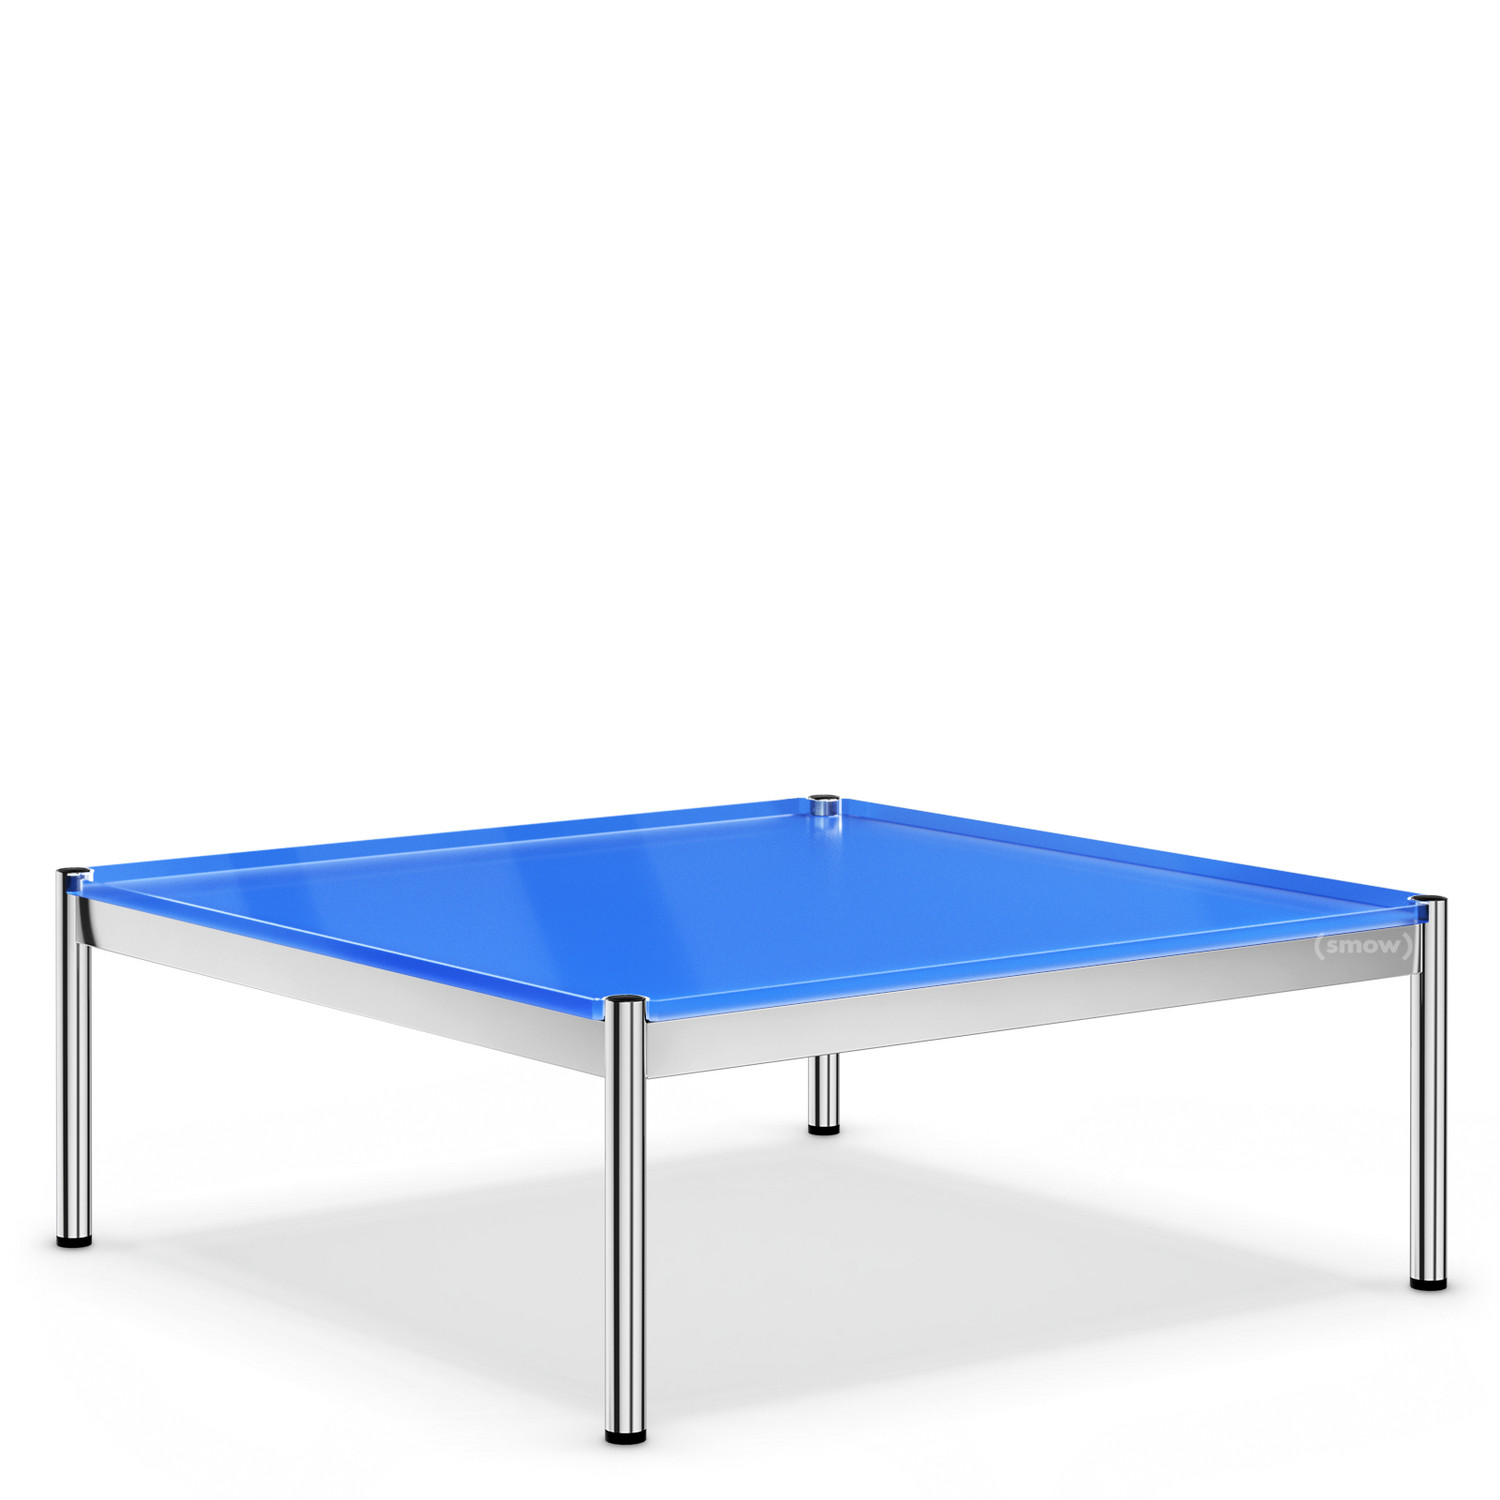 Couchtisch Plastik Usm Haller Coffee Table 100 X 100 Cm Glass Gentian Blue Ral